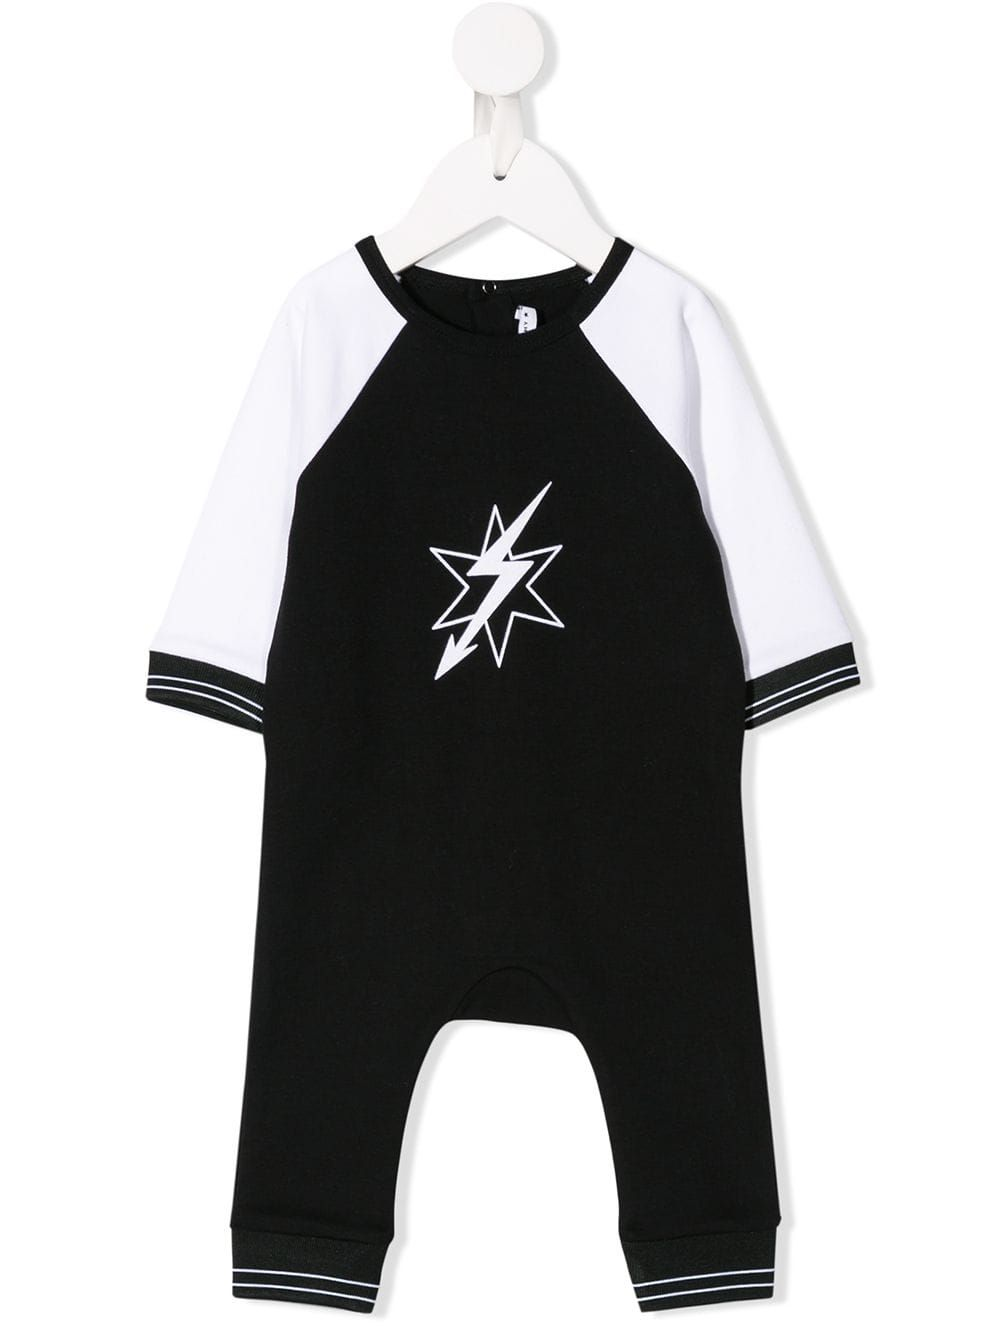 Givenchy Kids Lightning Bolt Sweatshirt | Products in 2019